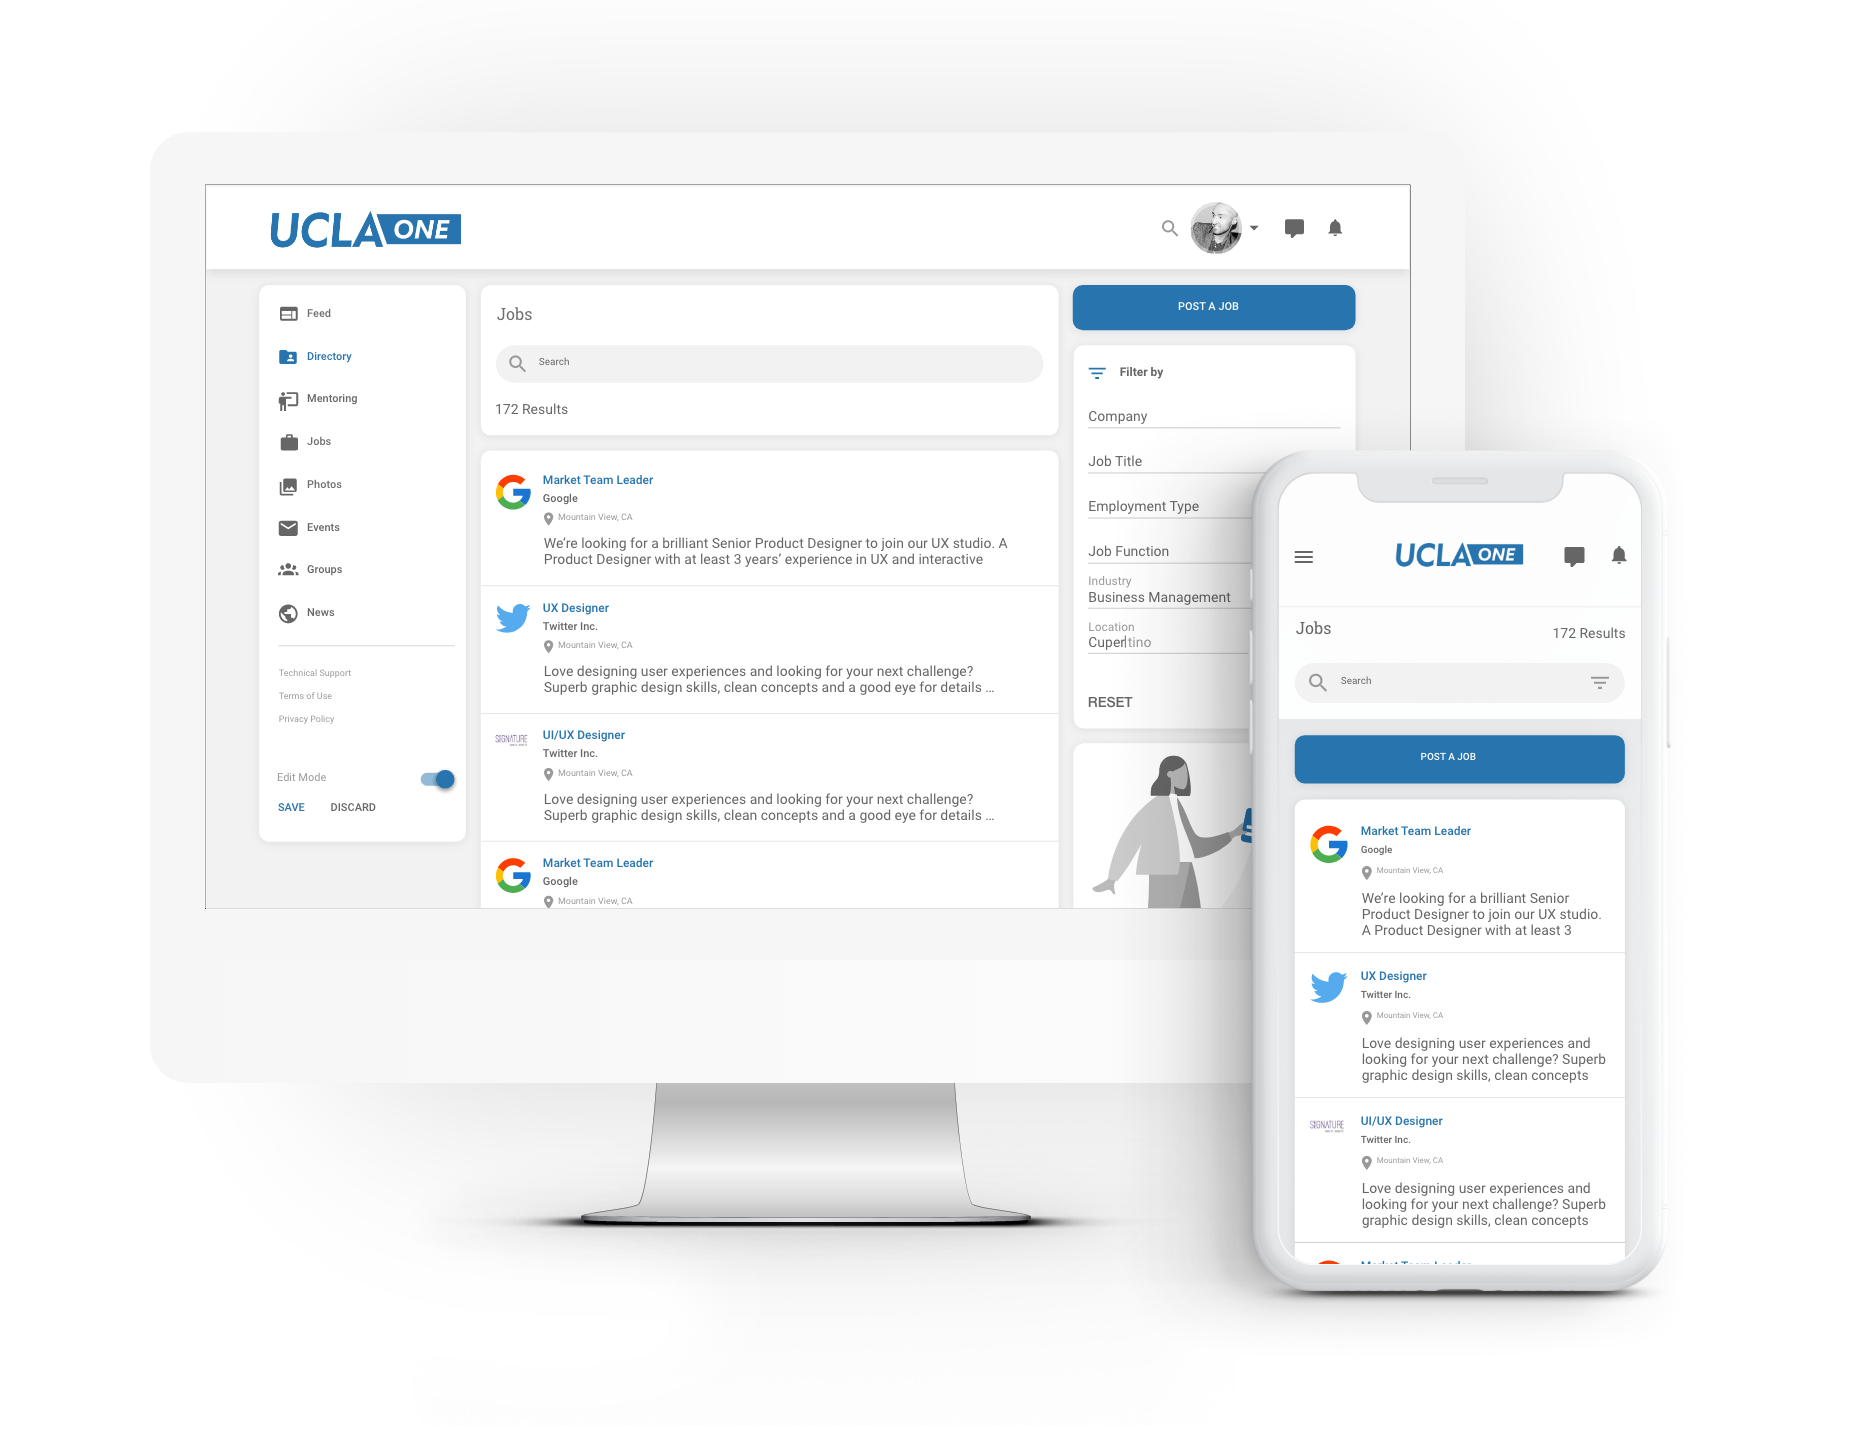 One centralized area to post, or view, job opportunities and internships. The board seamlessly integrates 3rd party RSS feeds such as Handshake and Indeed.